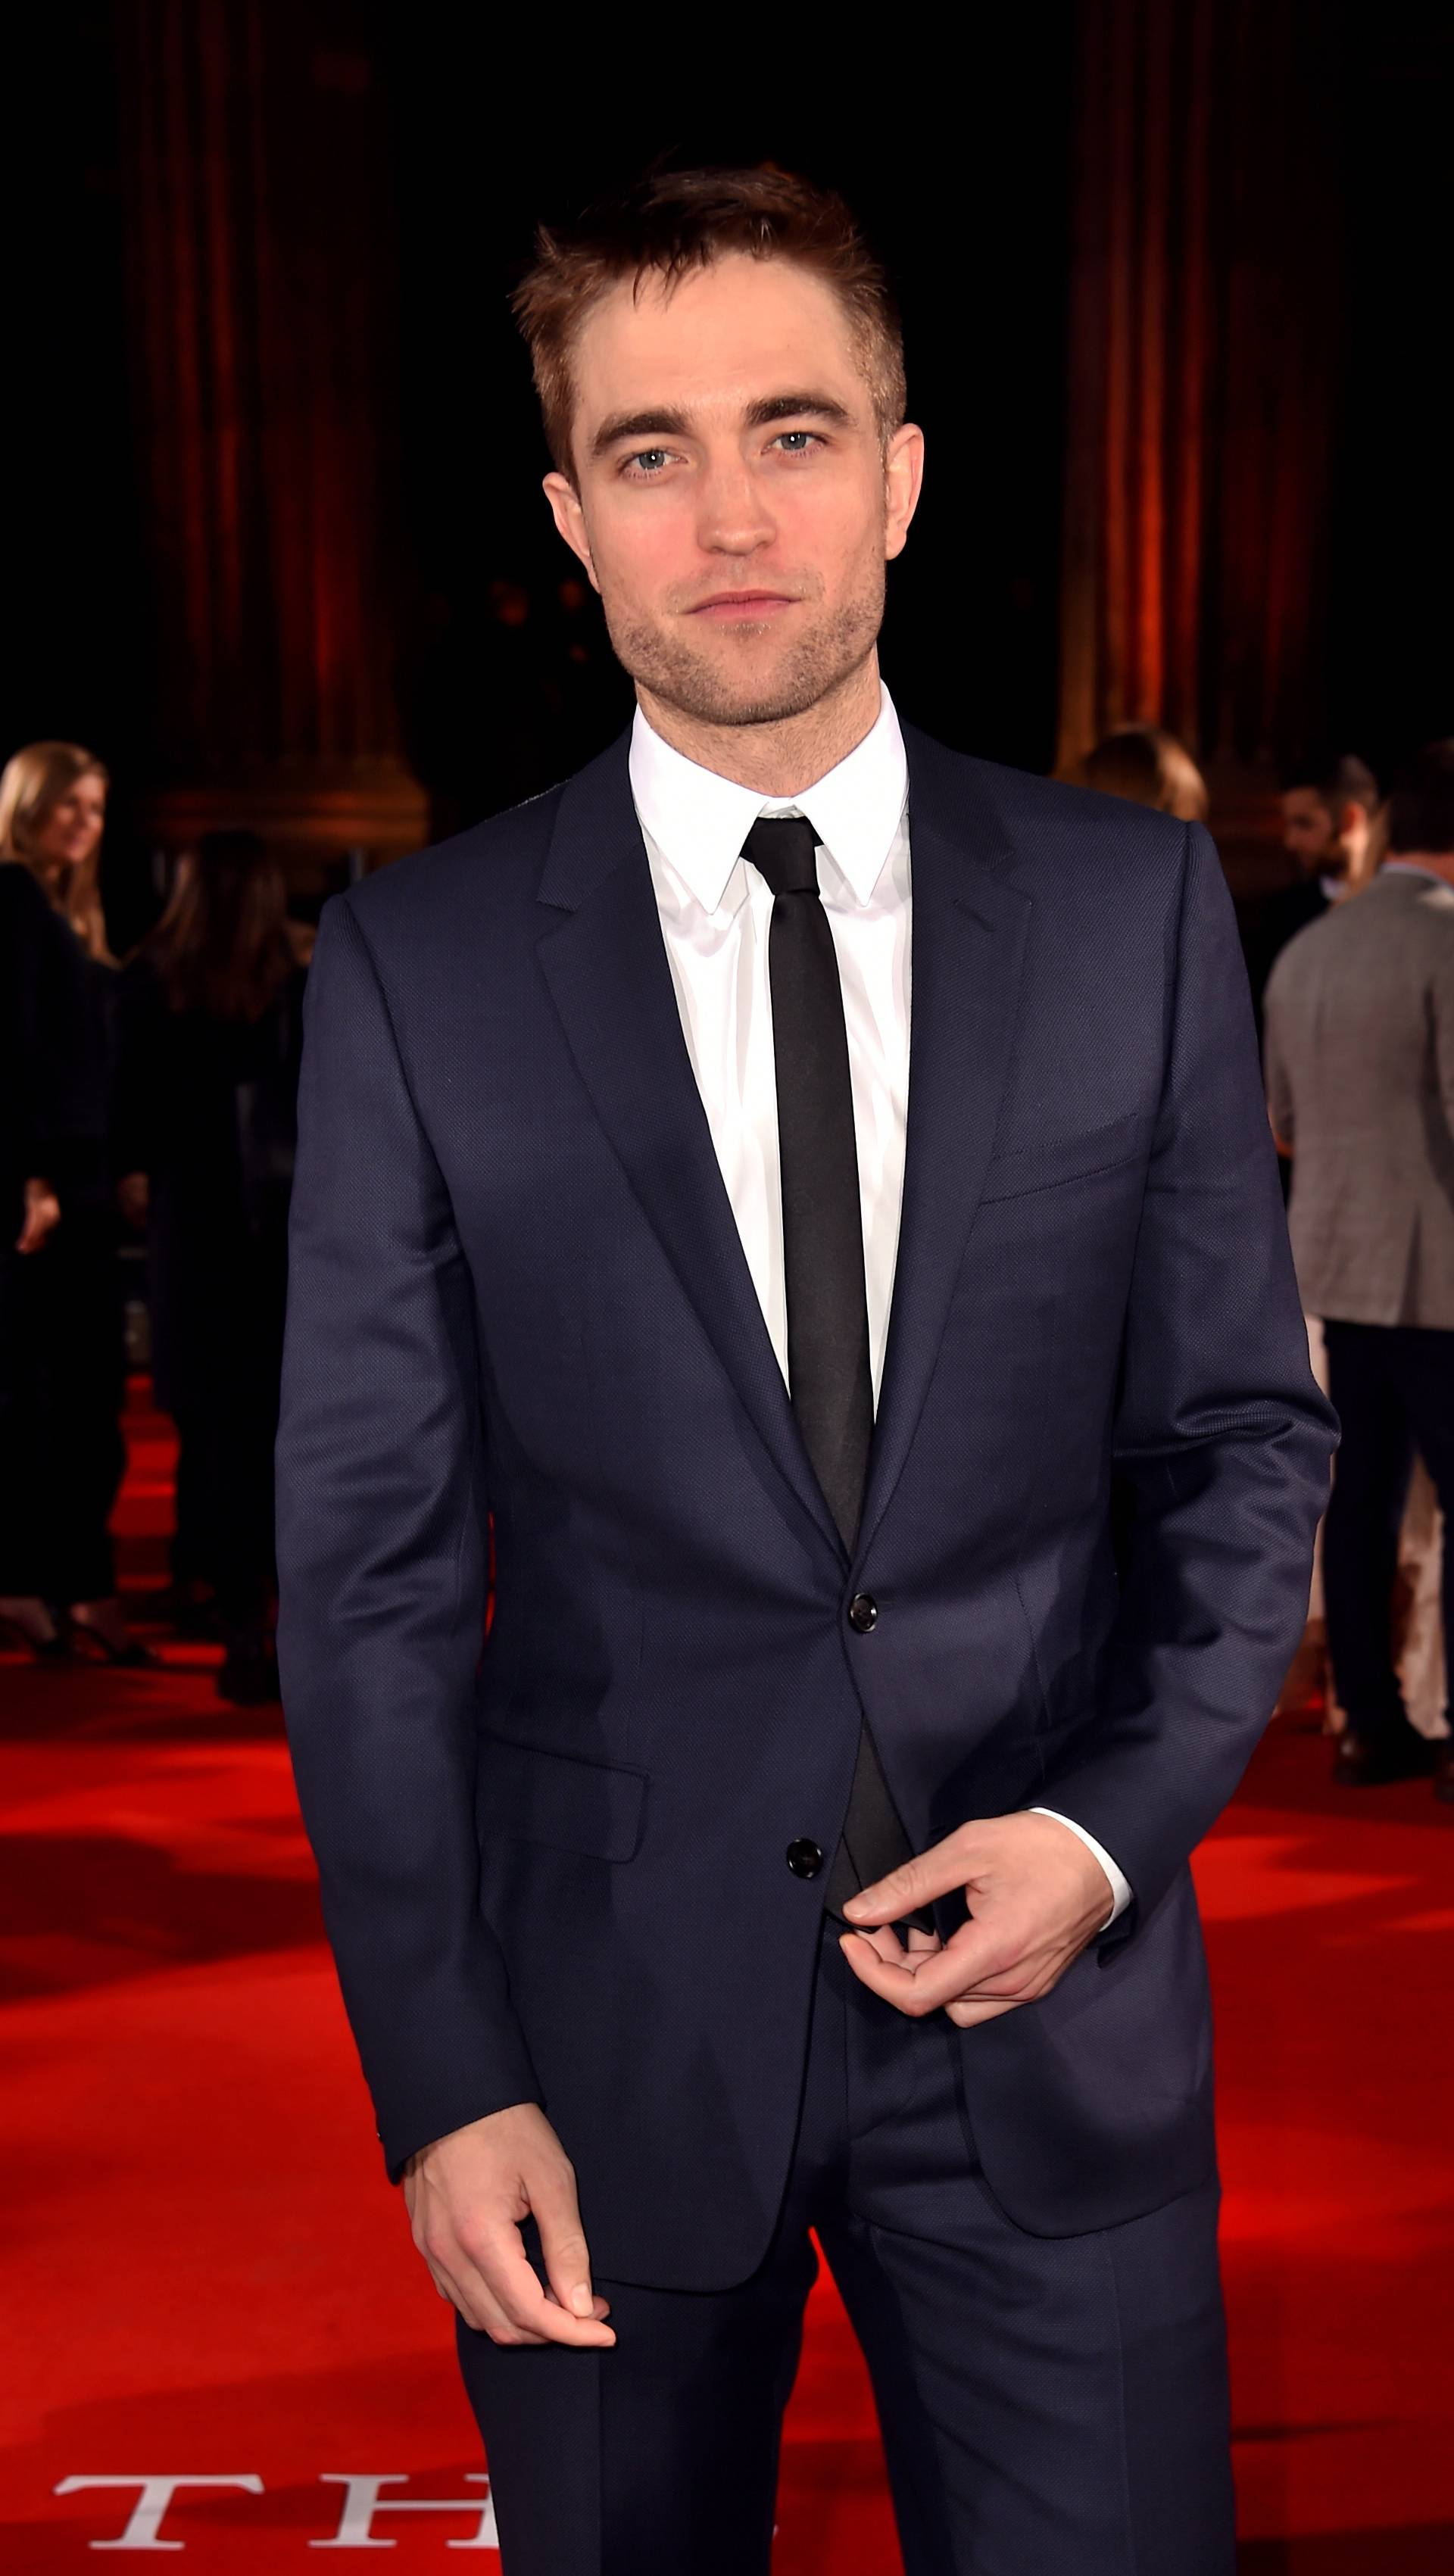 The Lost City of Z UK Premiere - London